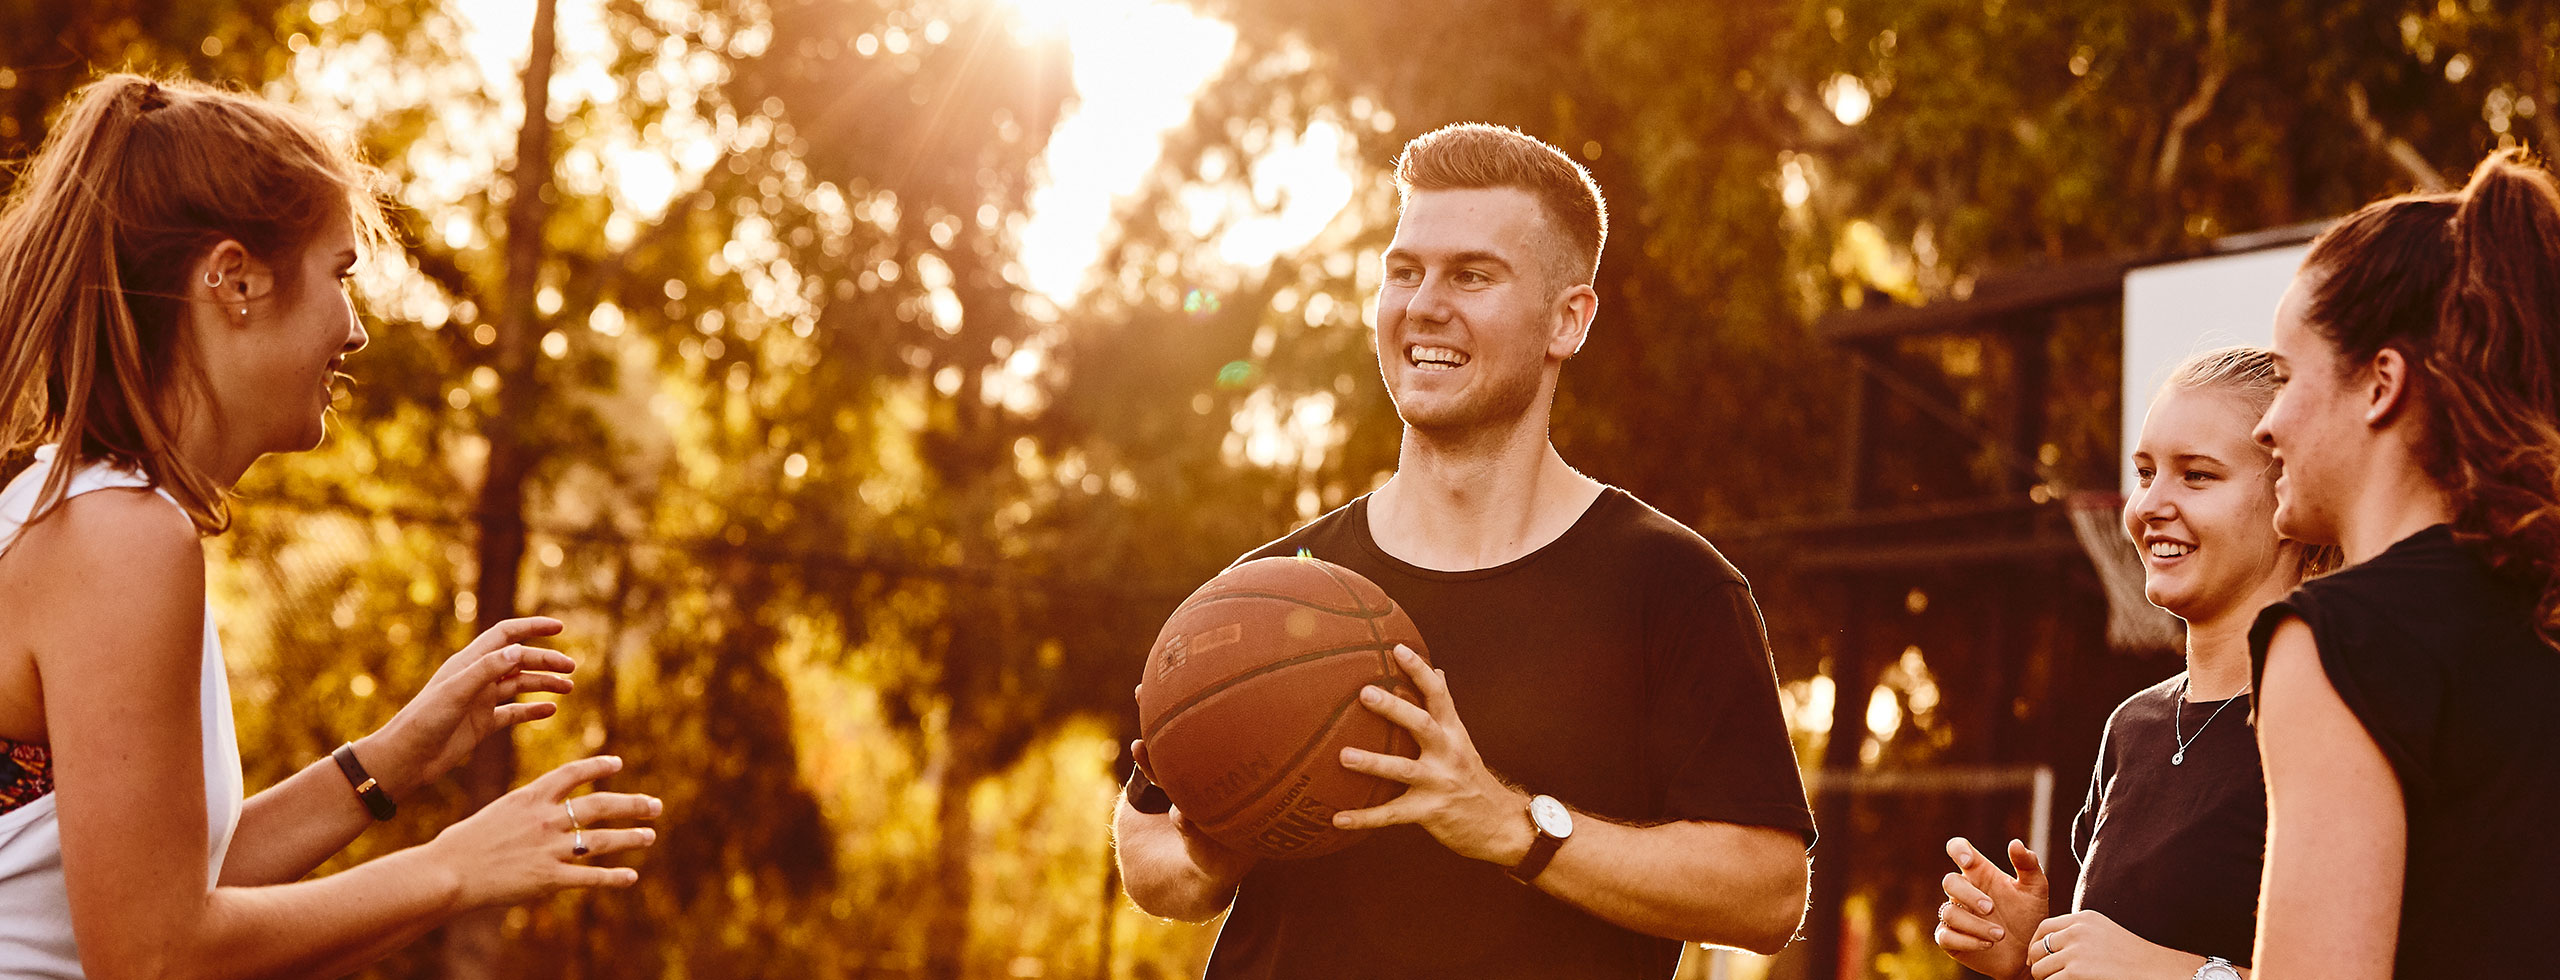 Ben Lewis playing basketball with friends